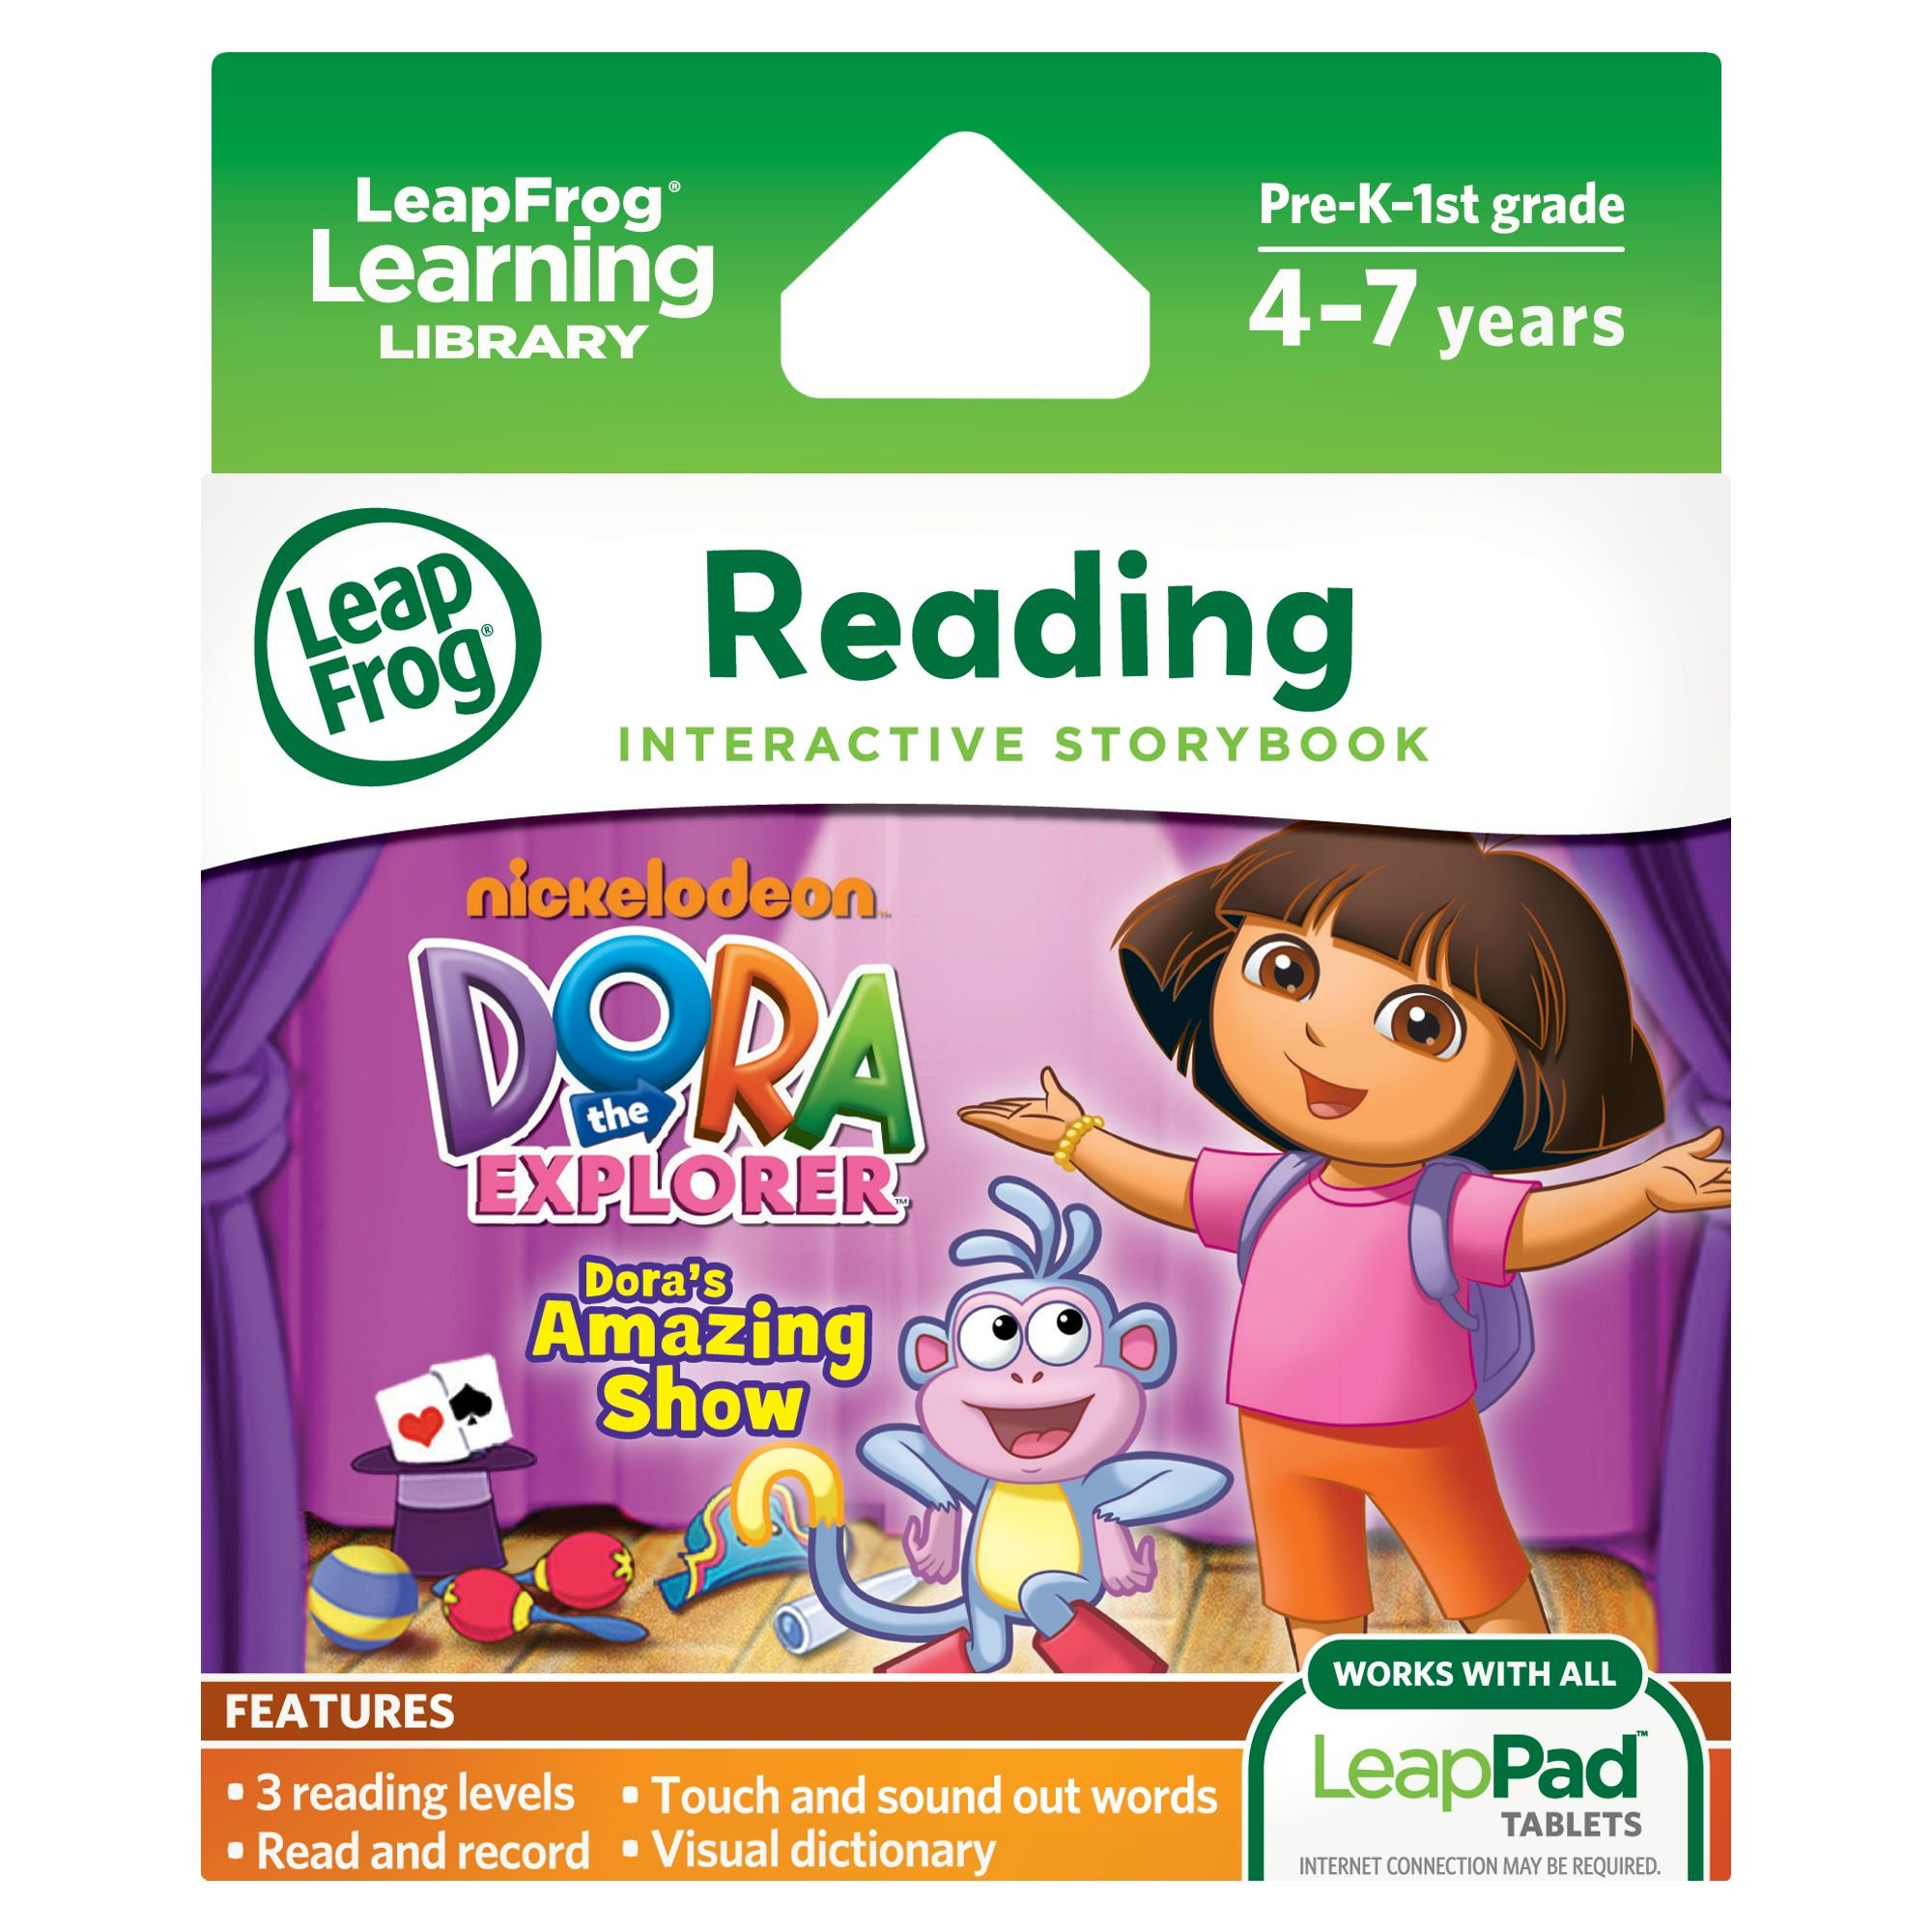 LeapFrog LeapPad Dora's Amazing Show Ultra eBook (works with all LeapPad tablets) by LeapFrog